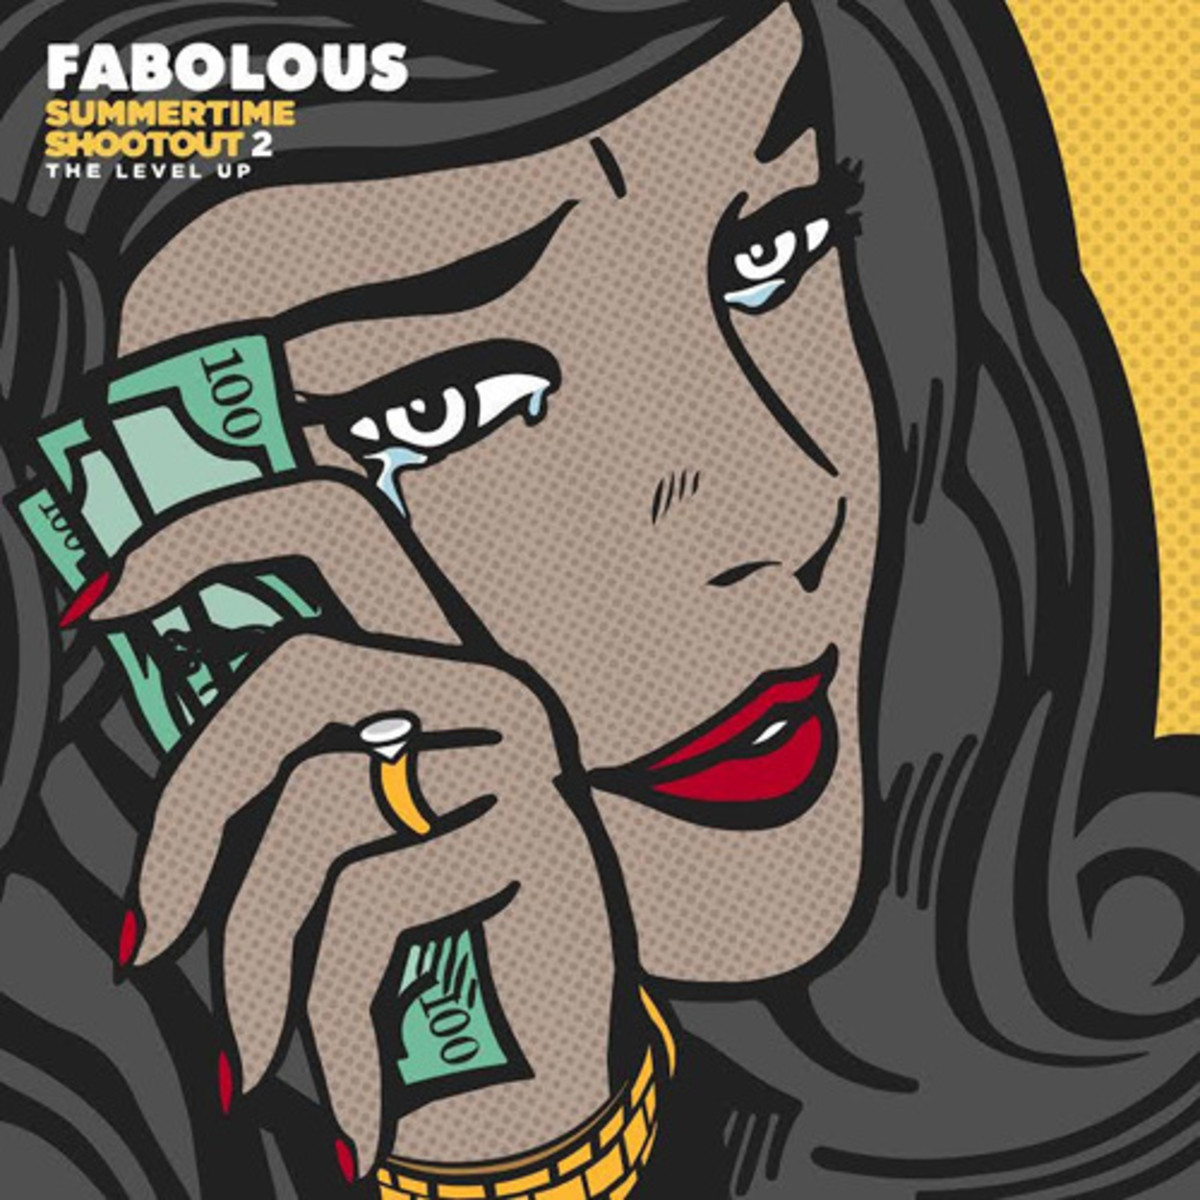 fabolous-summertime-shootout-2.jpg